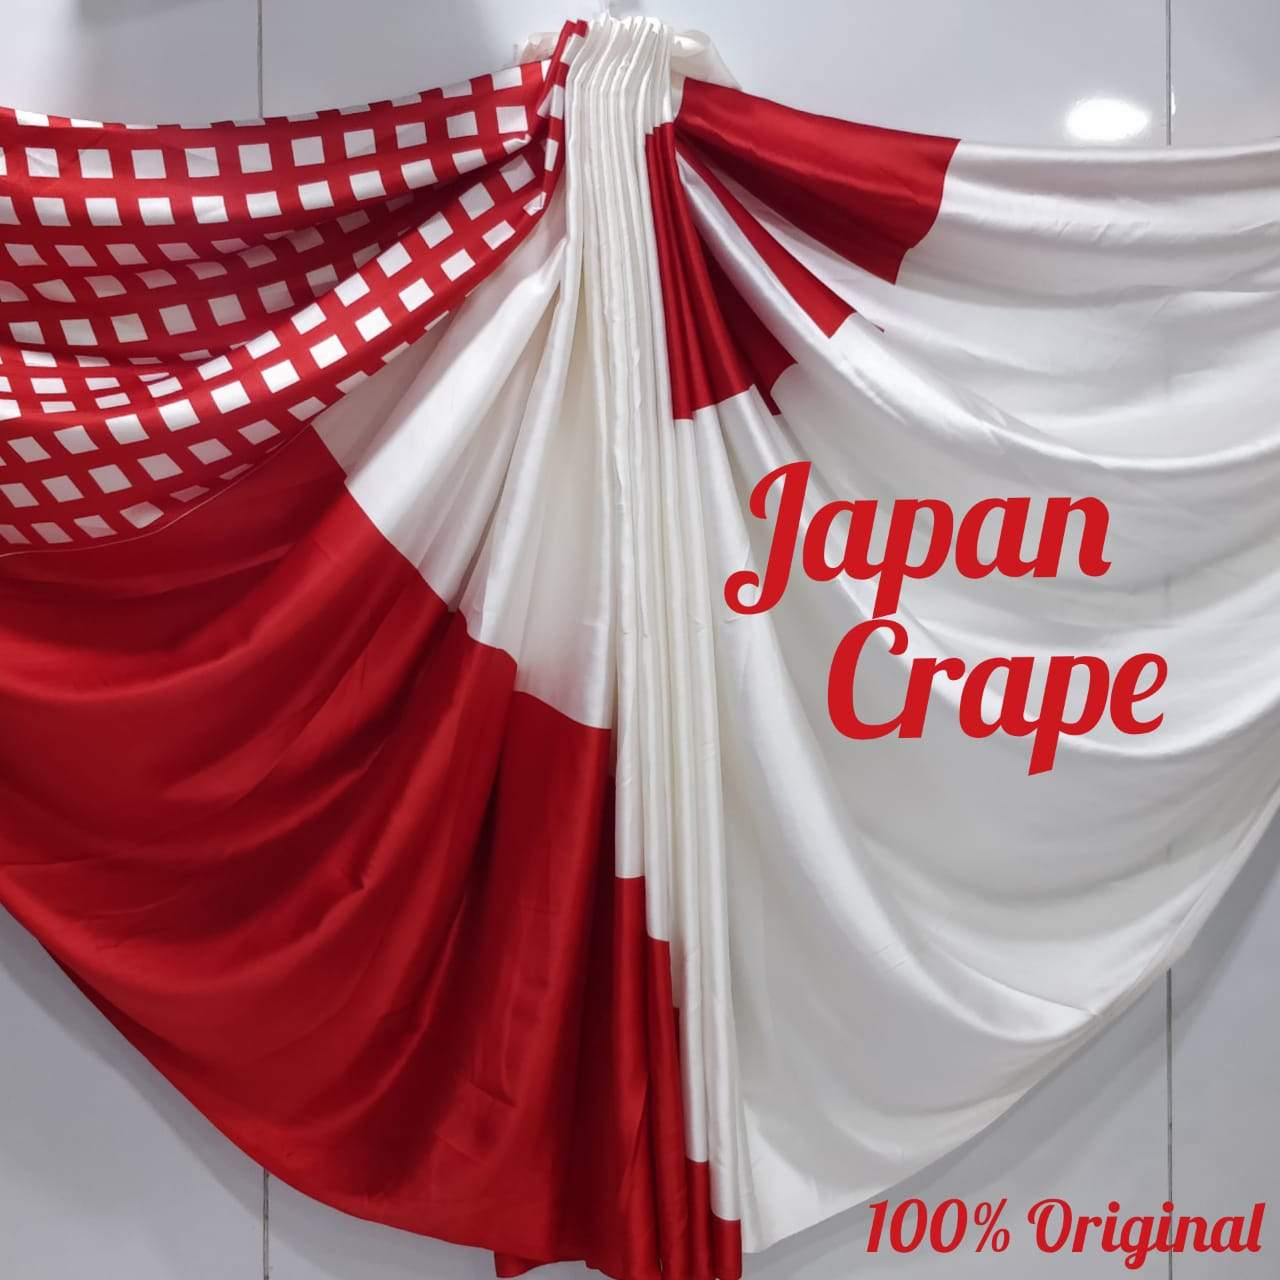 Japan crape silk saree 5025